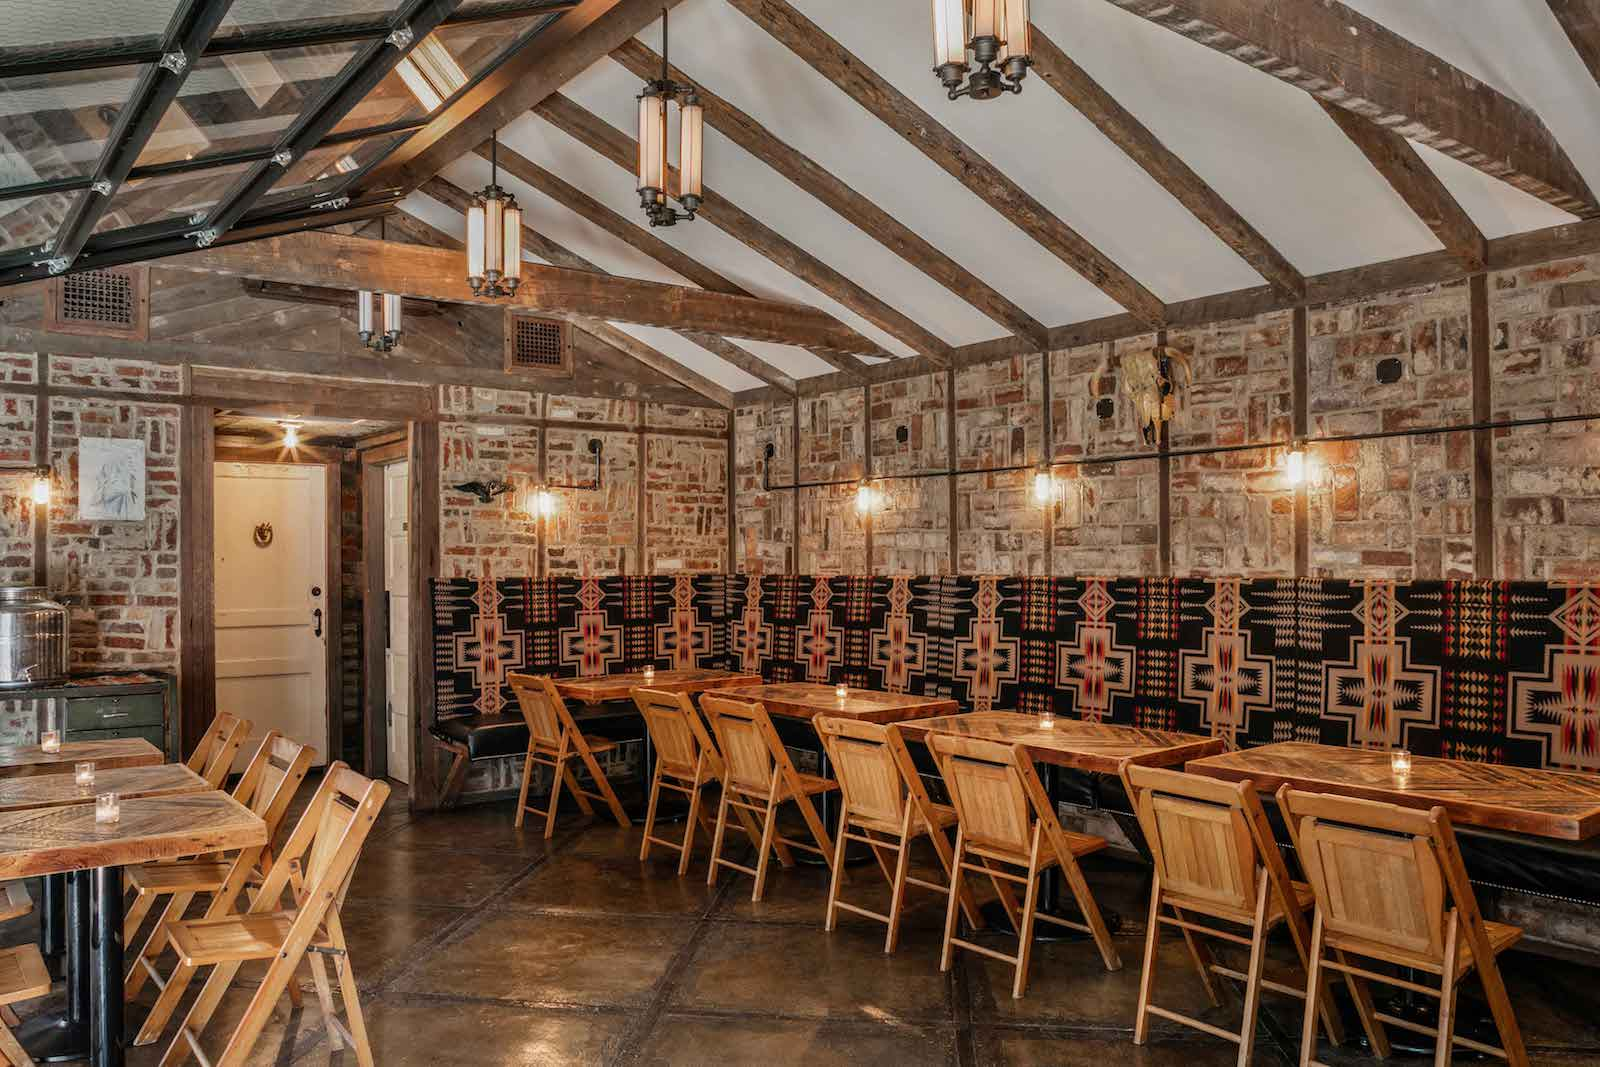 View of the main dining area of Urban Cowboy's Public House Kitchen and Bar. Wooden tables and chairs/benches make up this main dining area.